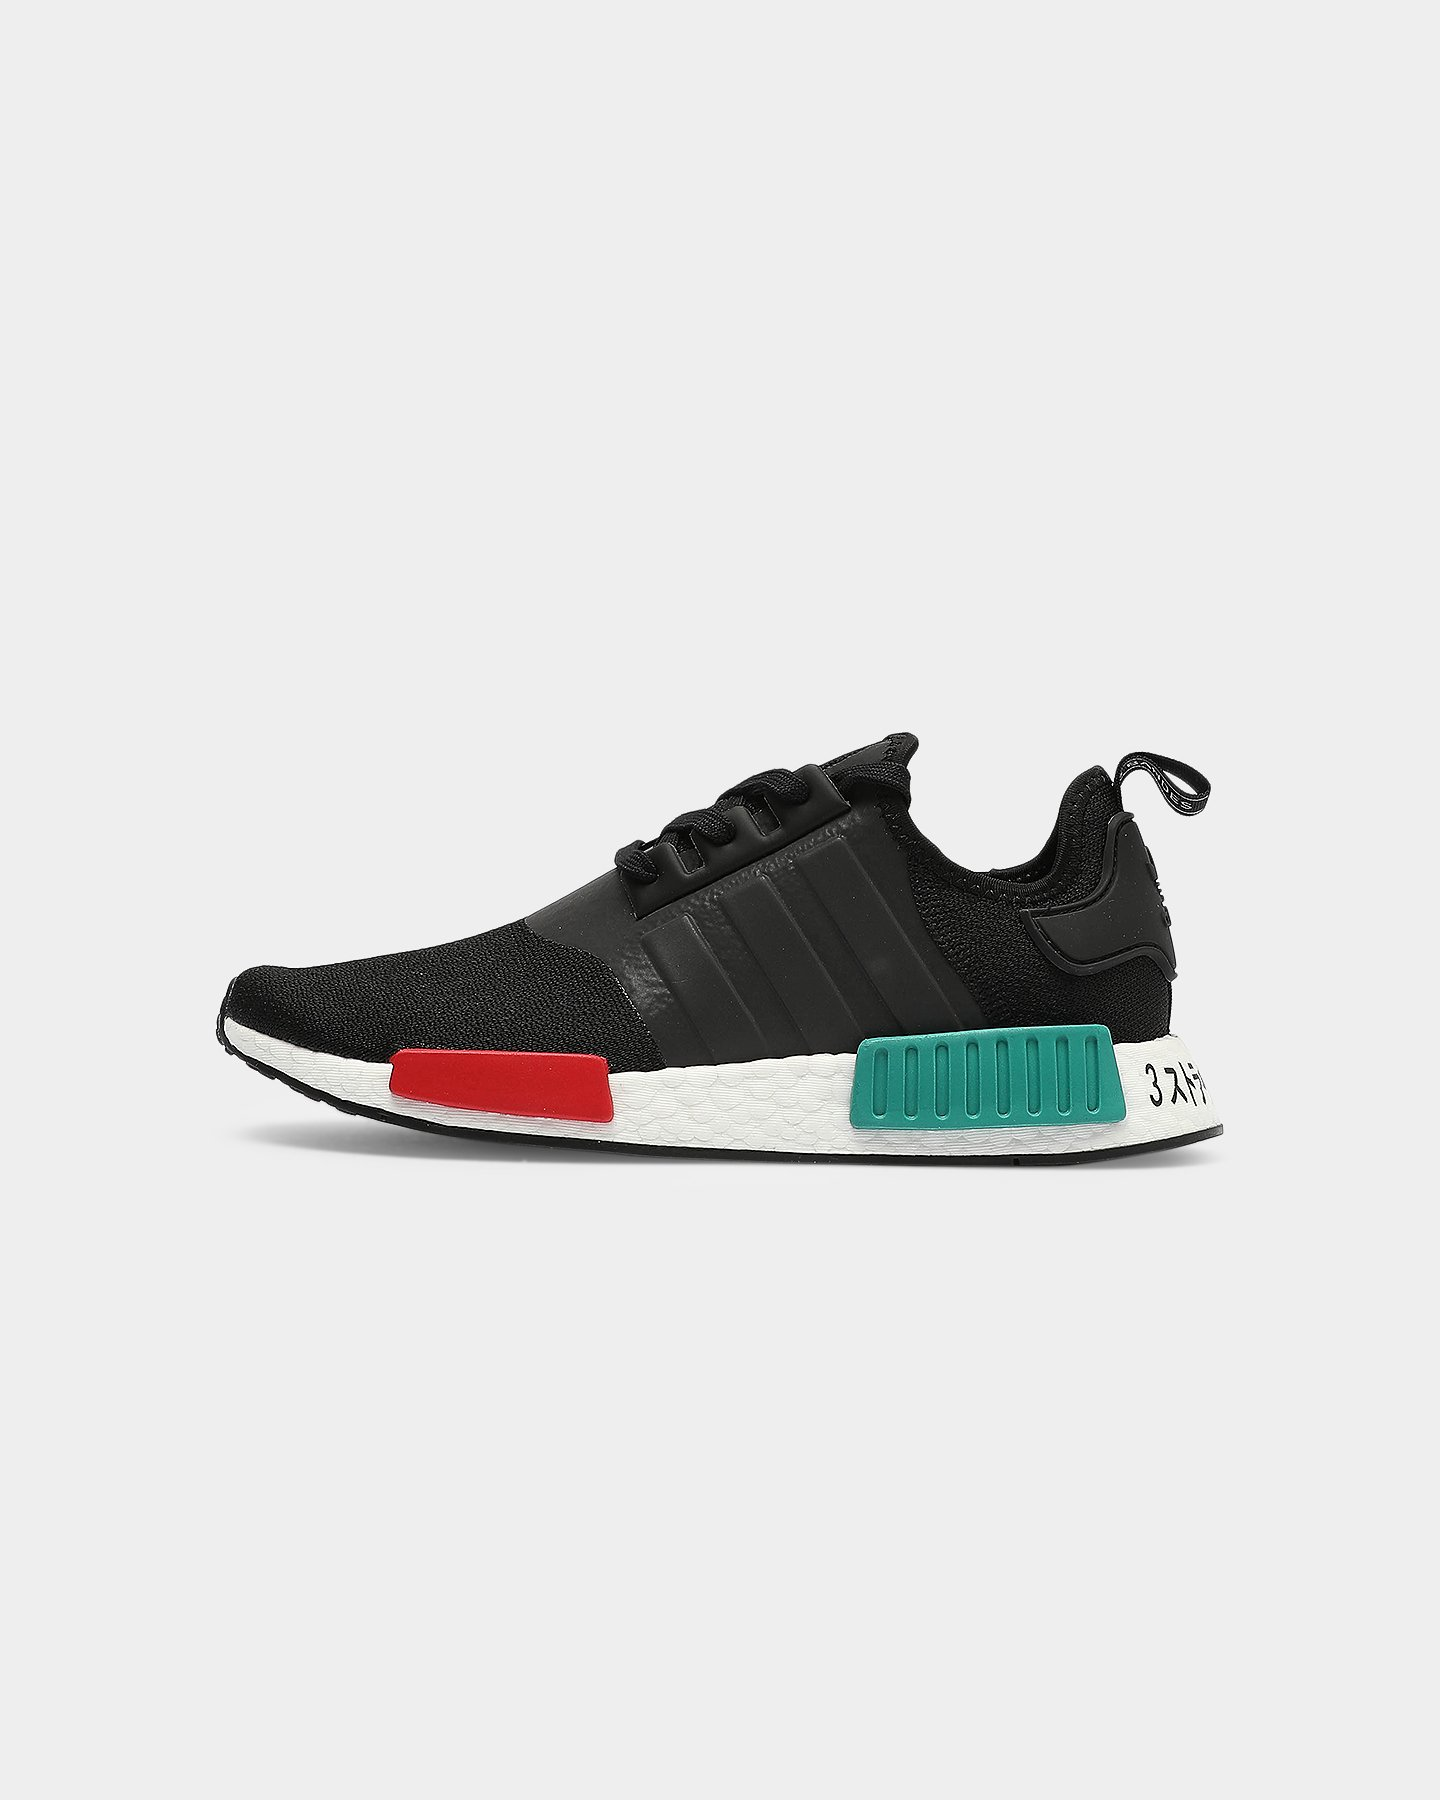 Adidas NMD R1 Black/Green/Red   Culture